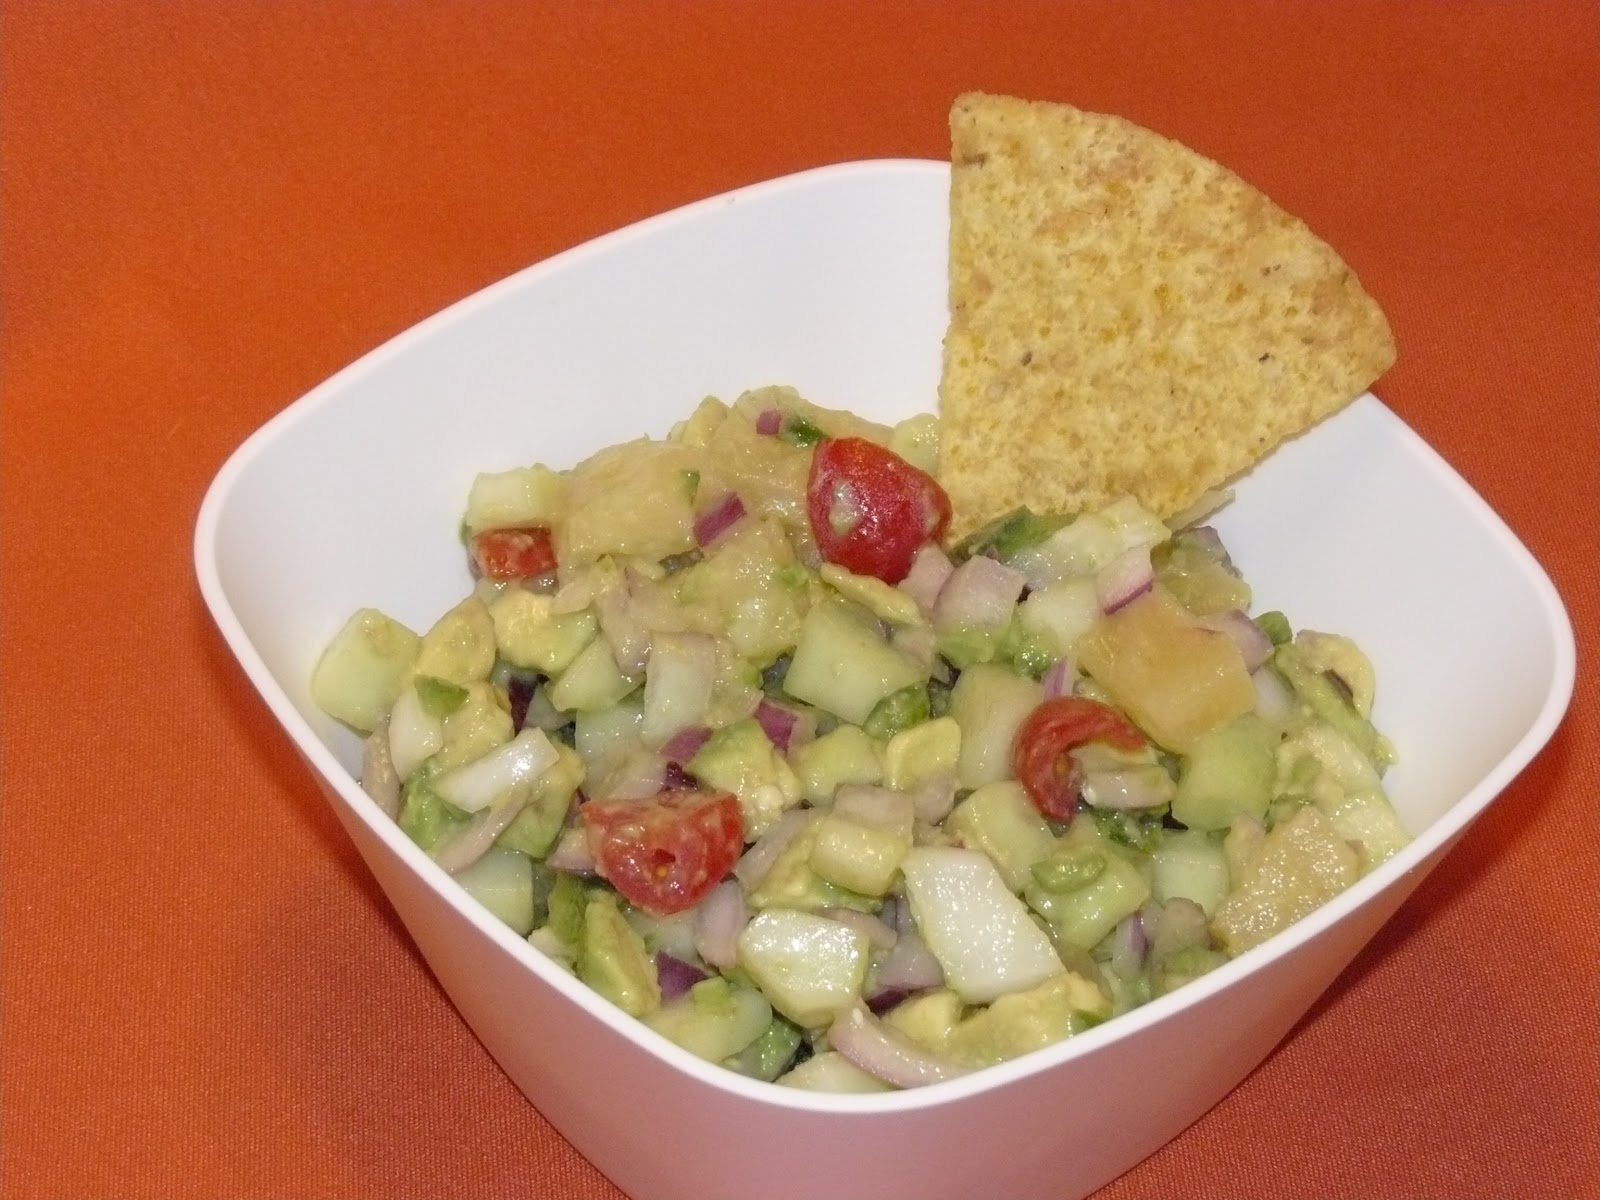 chookie chookie: avocado pineapple cucumber salsa